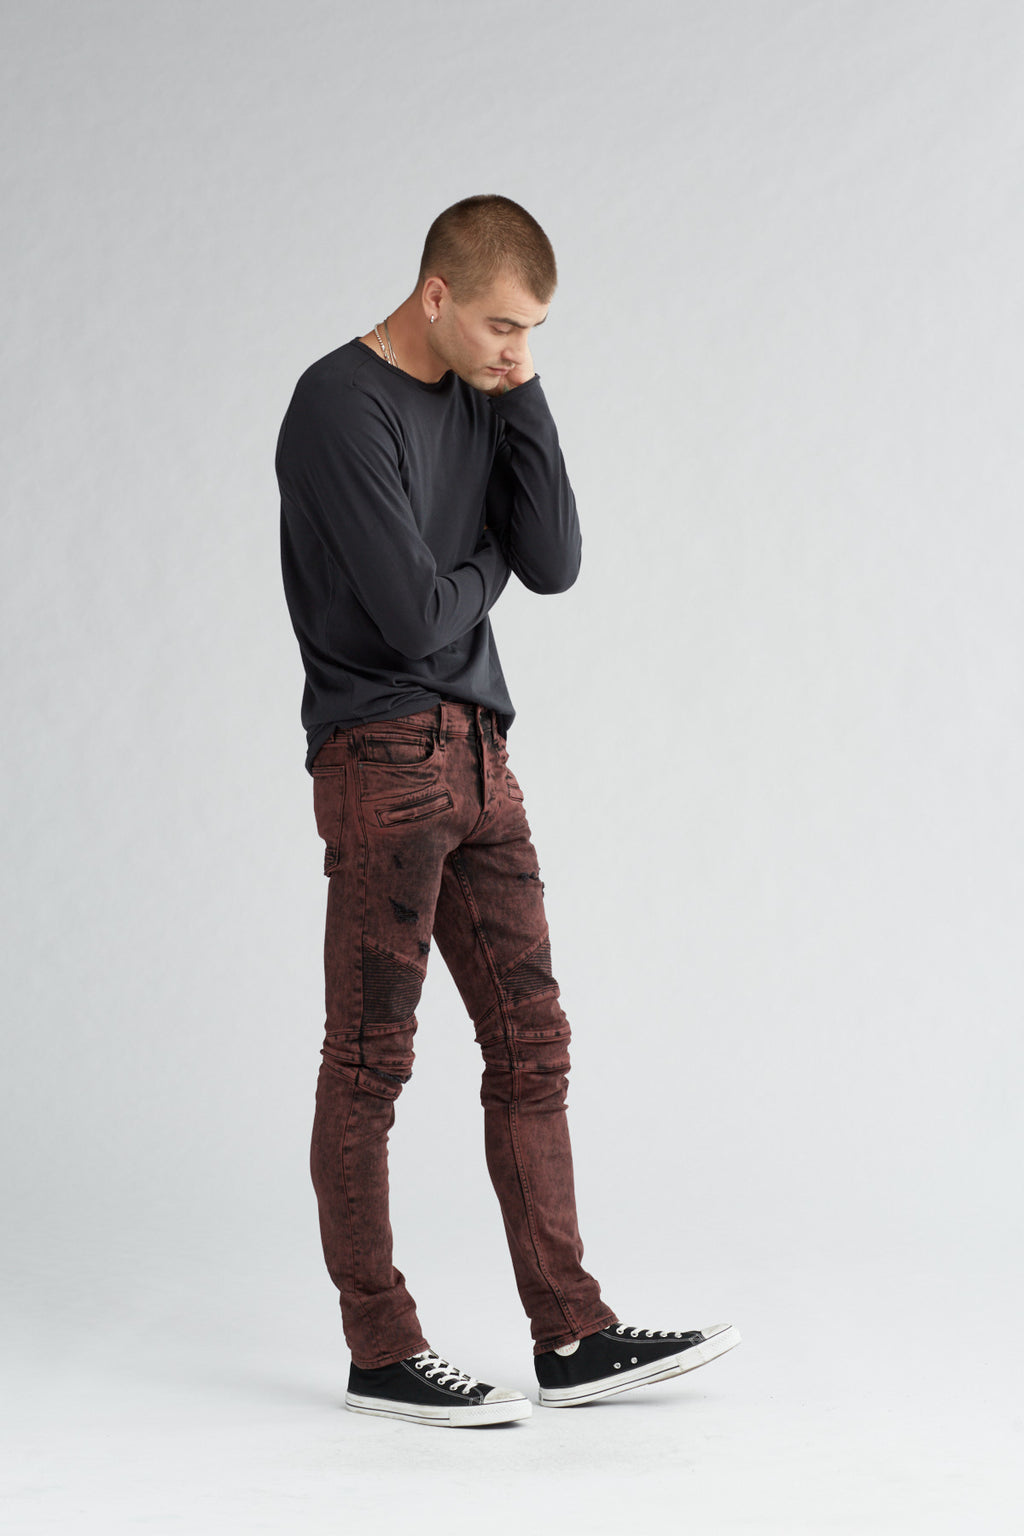 BLINDER BIKER SKINNY MOTO JEAN - FADED OX BLOOD - Image 2